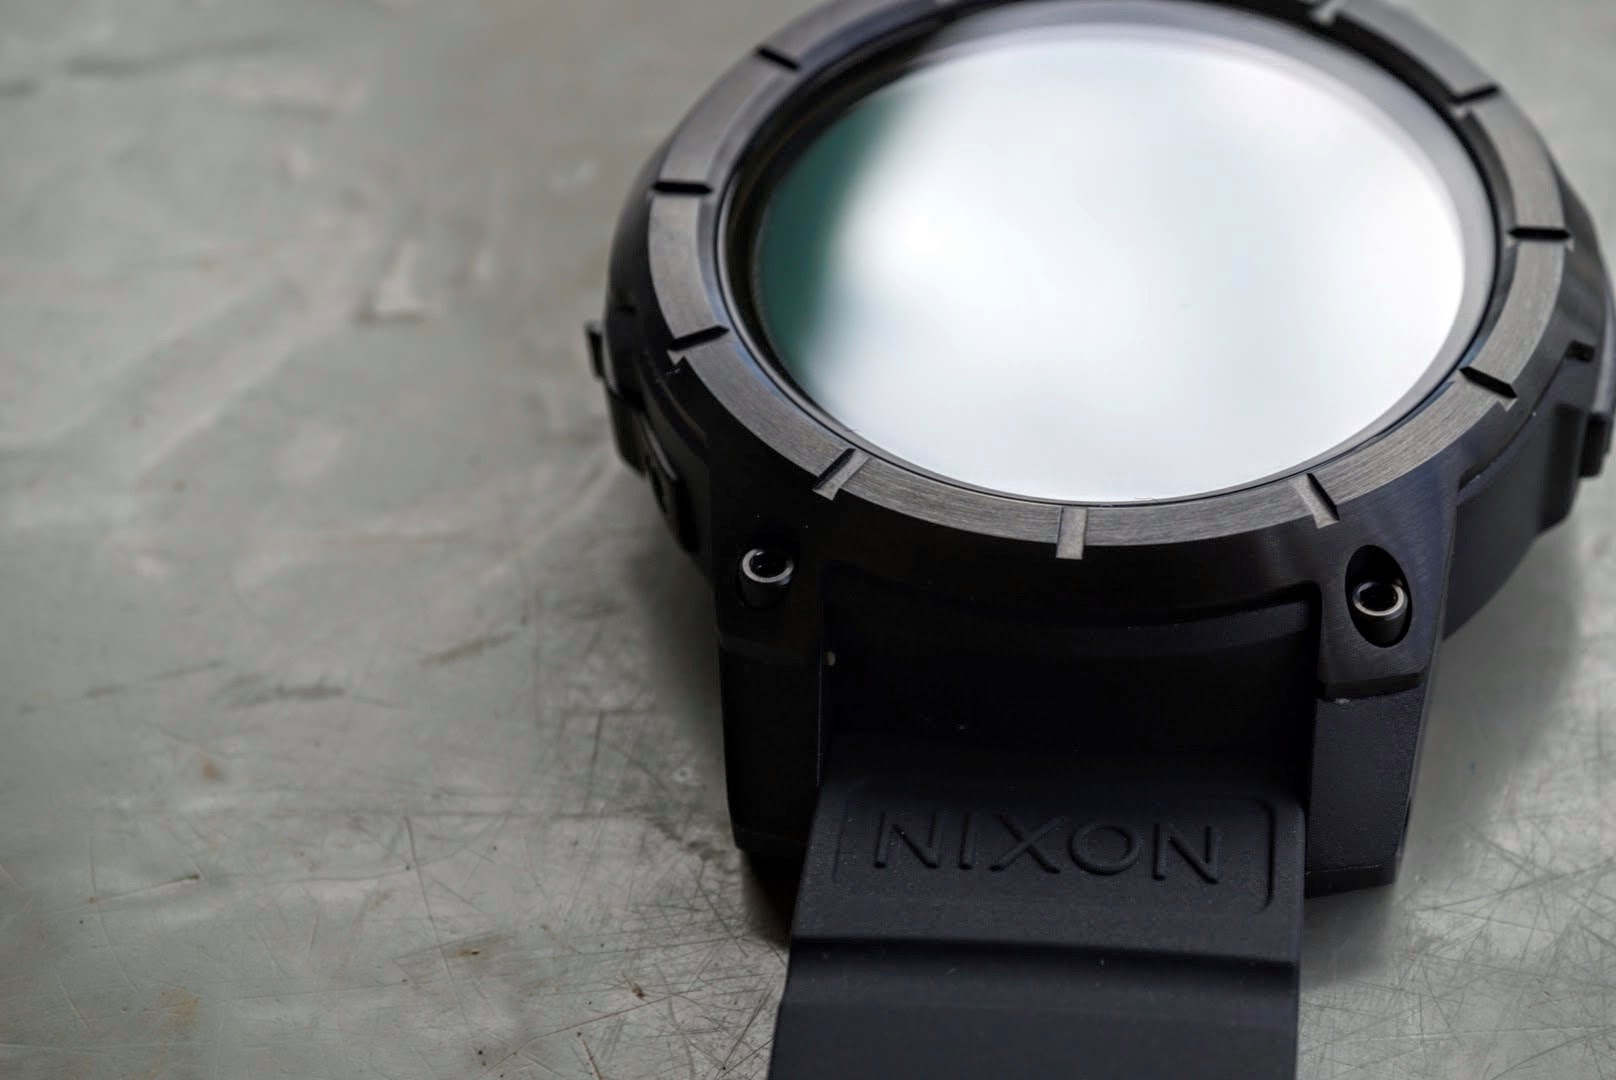 4928dd3a231 Nixon Mission Android Wear  One of the best smartwatches to date (review)